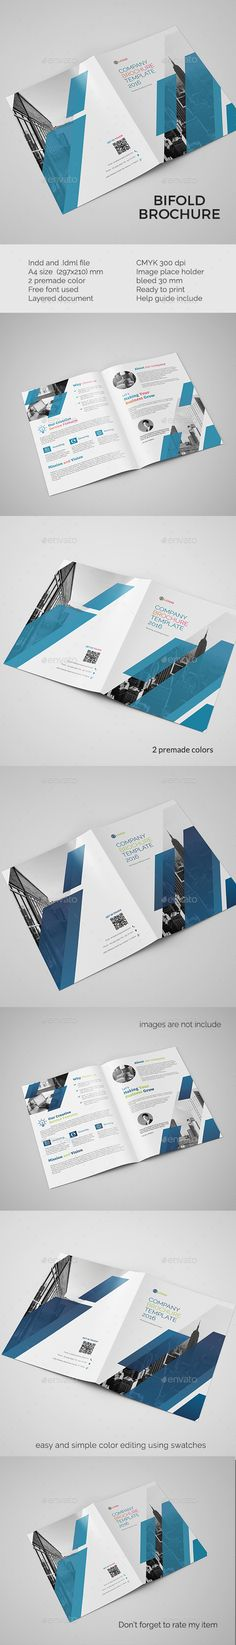 Architecture Brochure Architecture, Brochures and Minimal - architecture brochure template